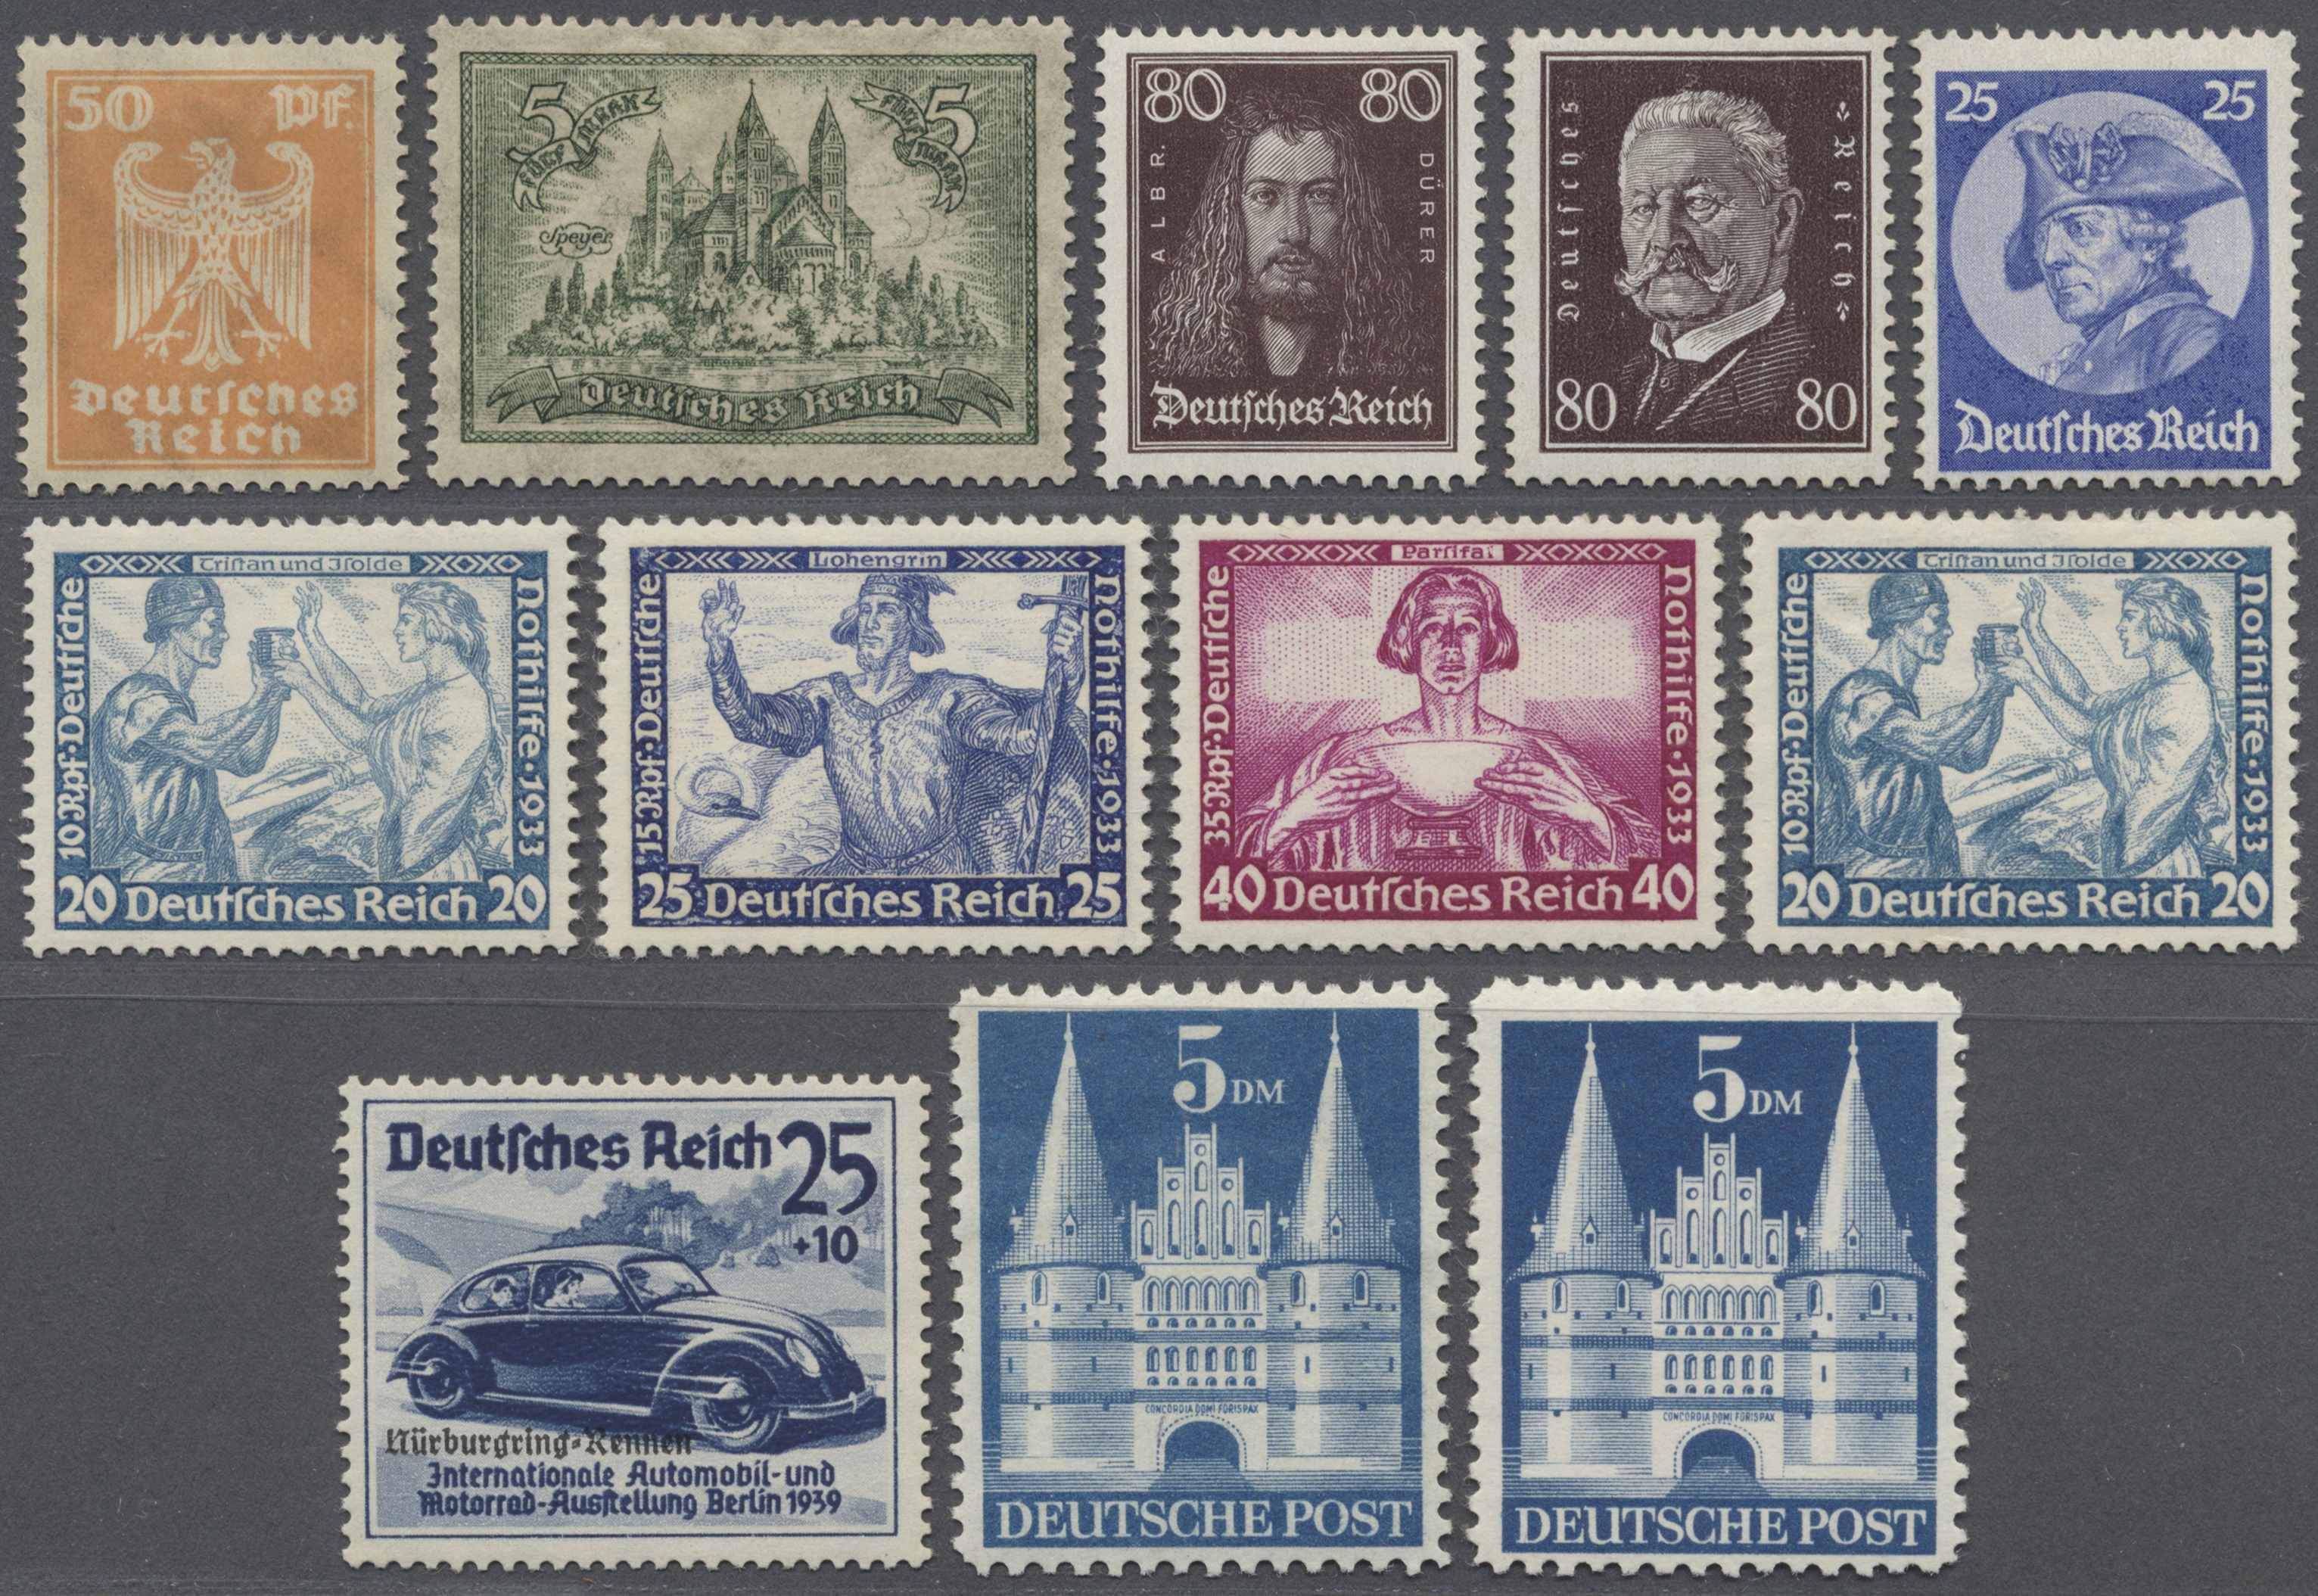 Lot 36098 - deutschland  -  Auktionshaus Christoph Gärtner GmbH & Co. KG Collections Germany,  Collections Supplement, Surprise boxes #39 Day 7